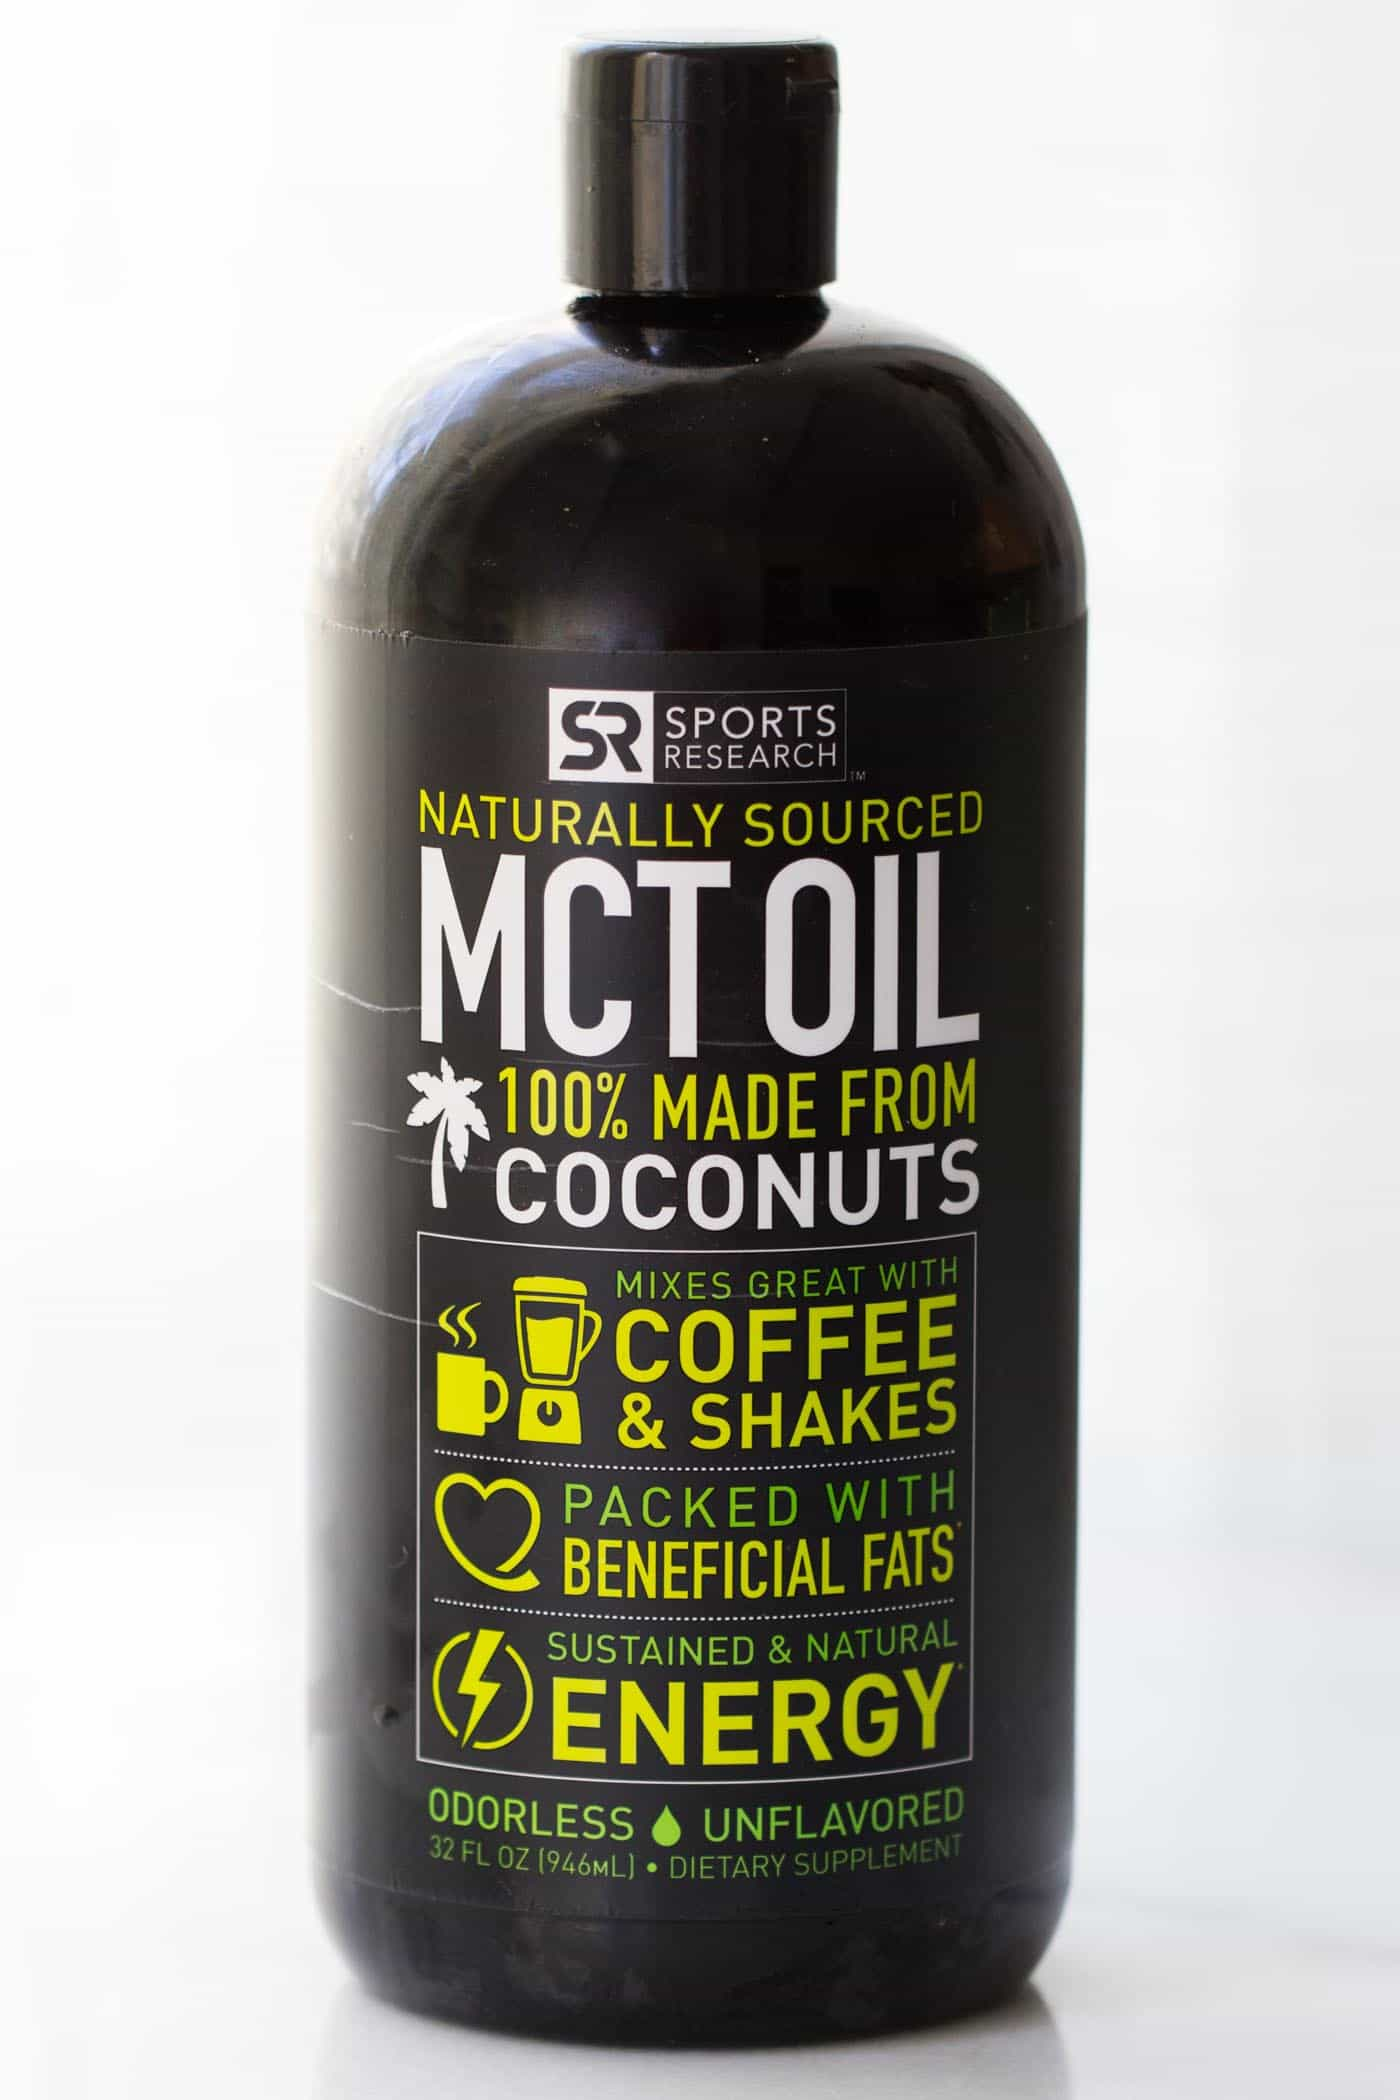 This is THE BEST MCT oil to add to coffee and lattes!